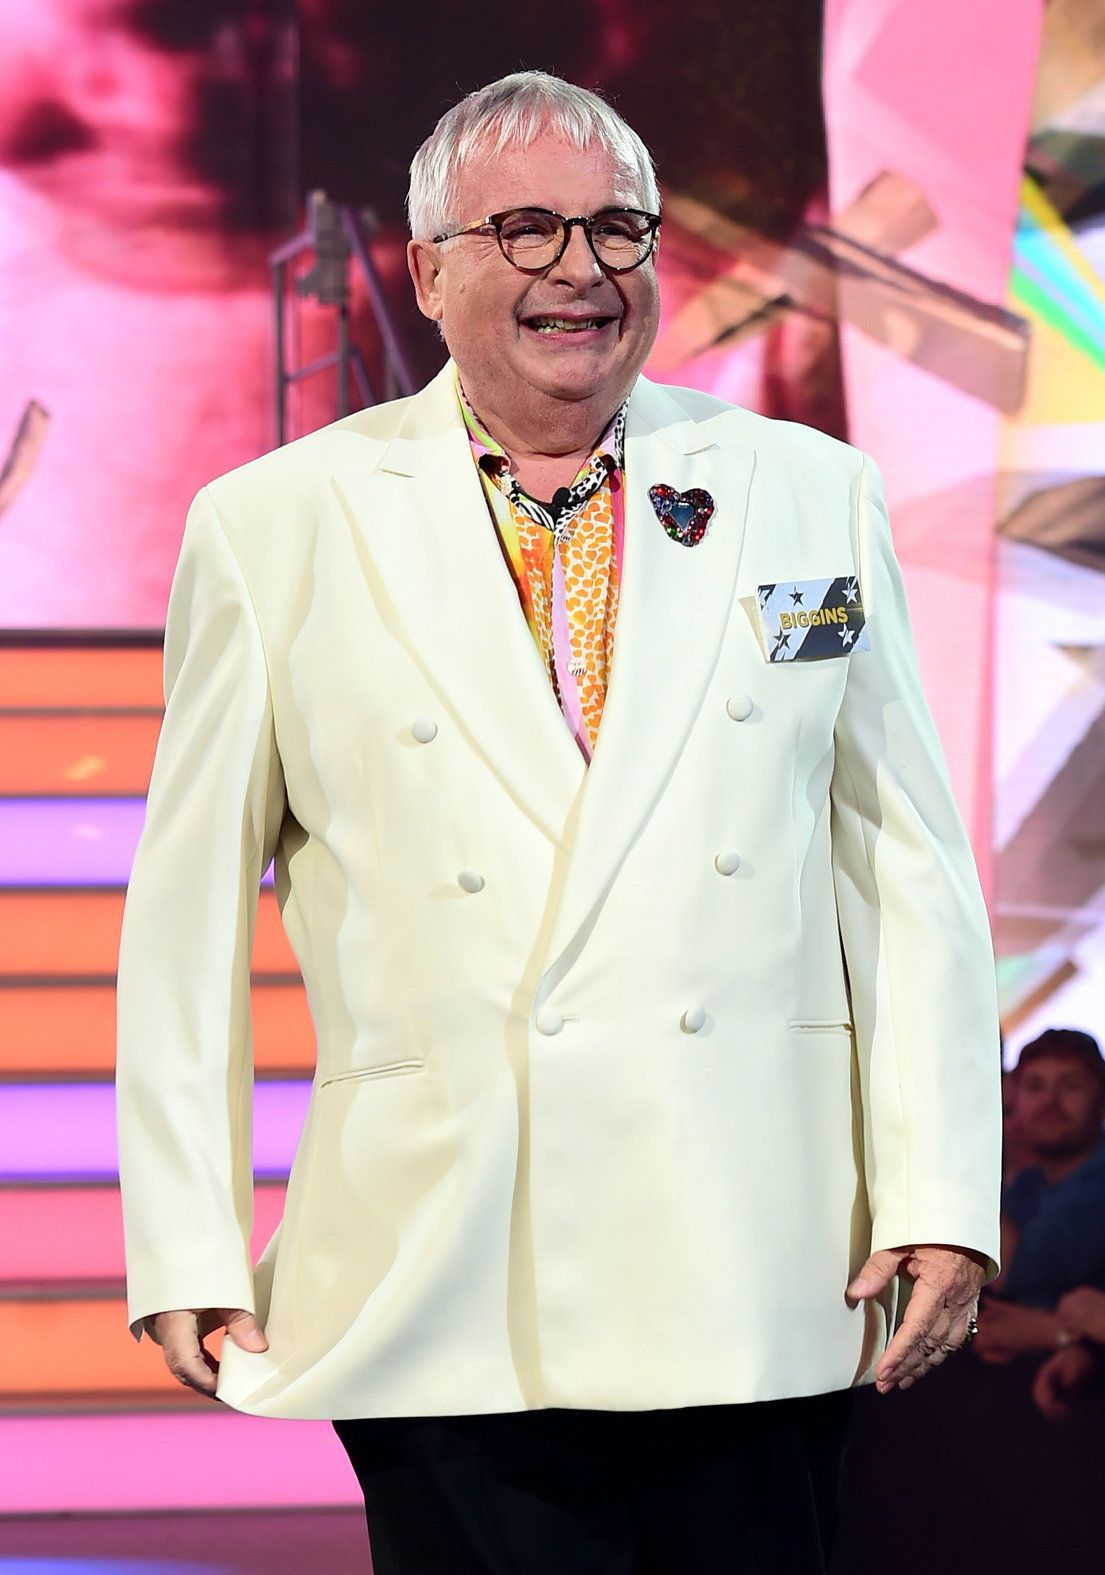 Ofcom Reach Verdict On Christopher Biggins' Bisexuality Comments On 'Celebrity Big